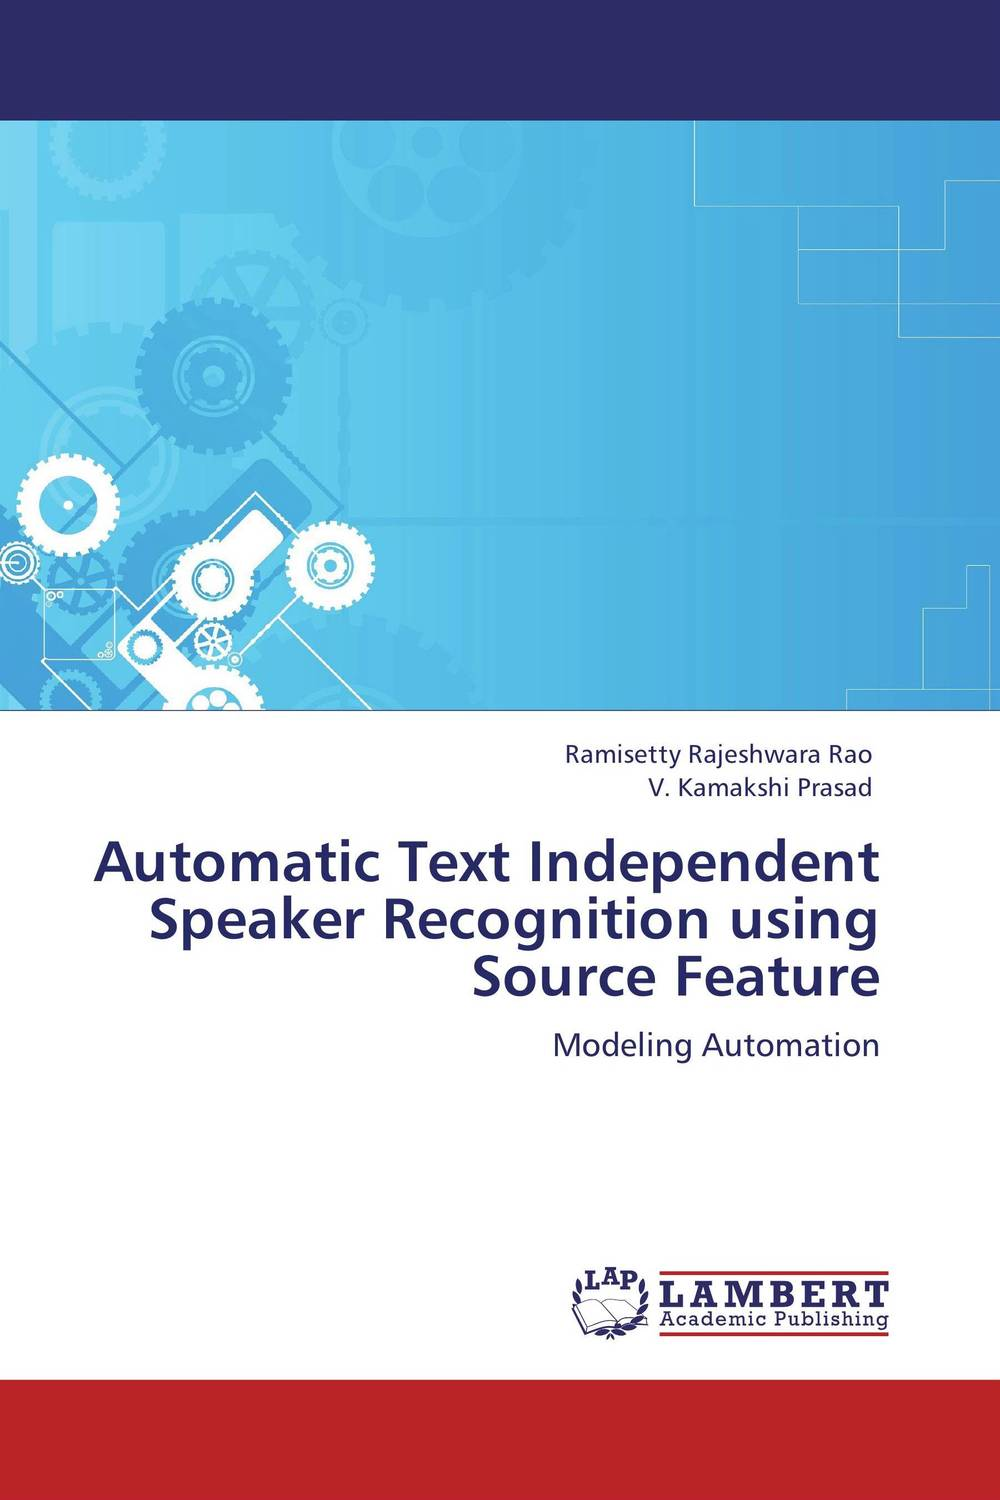 все цены на Automatic Text Independent Speaker Recognition using Source Feature онлайн